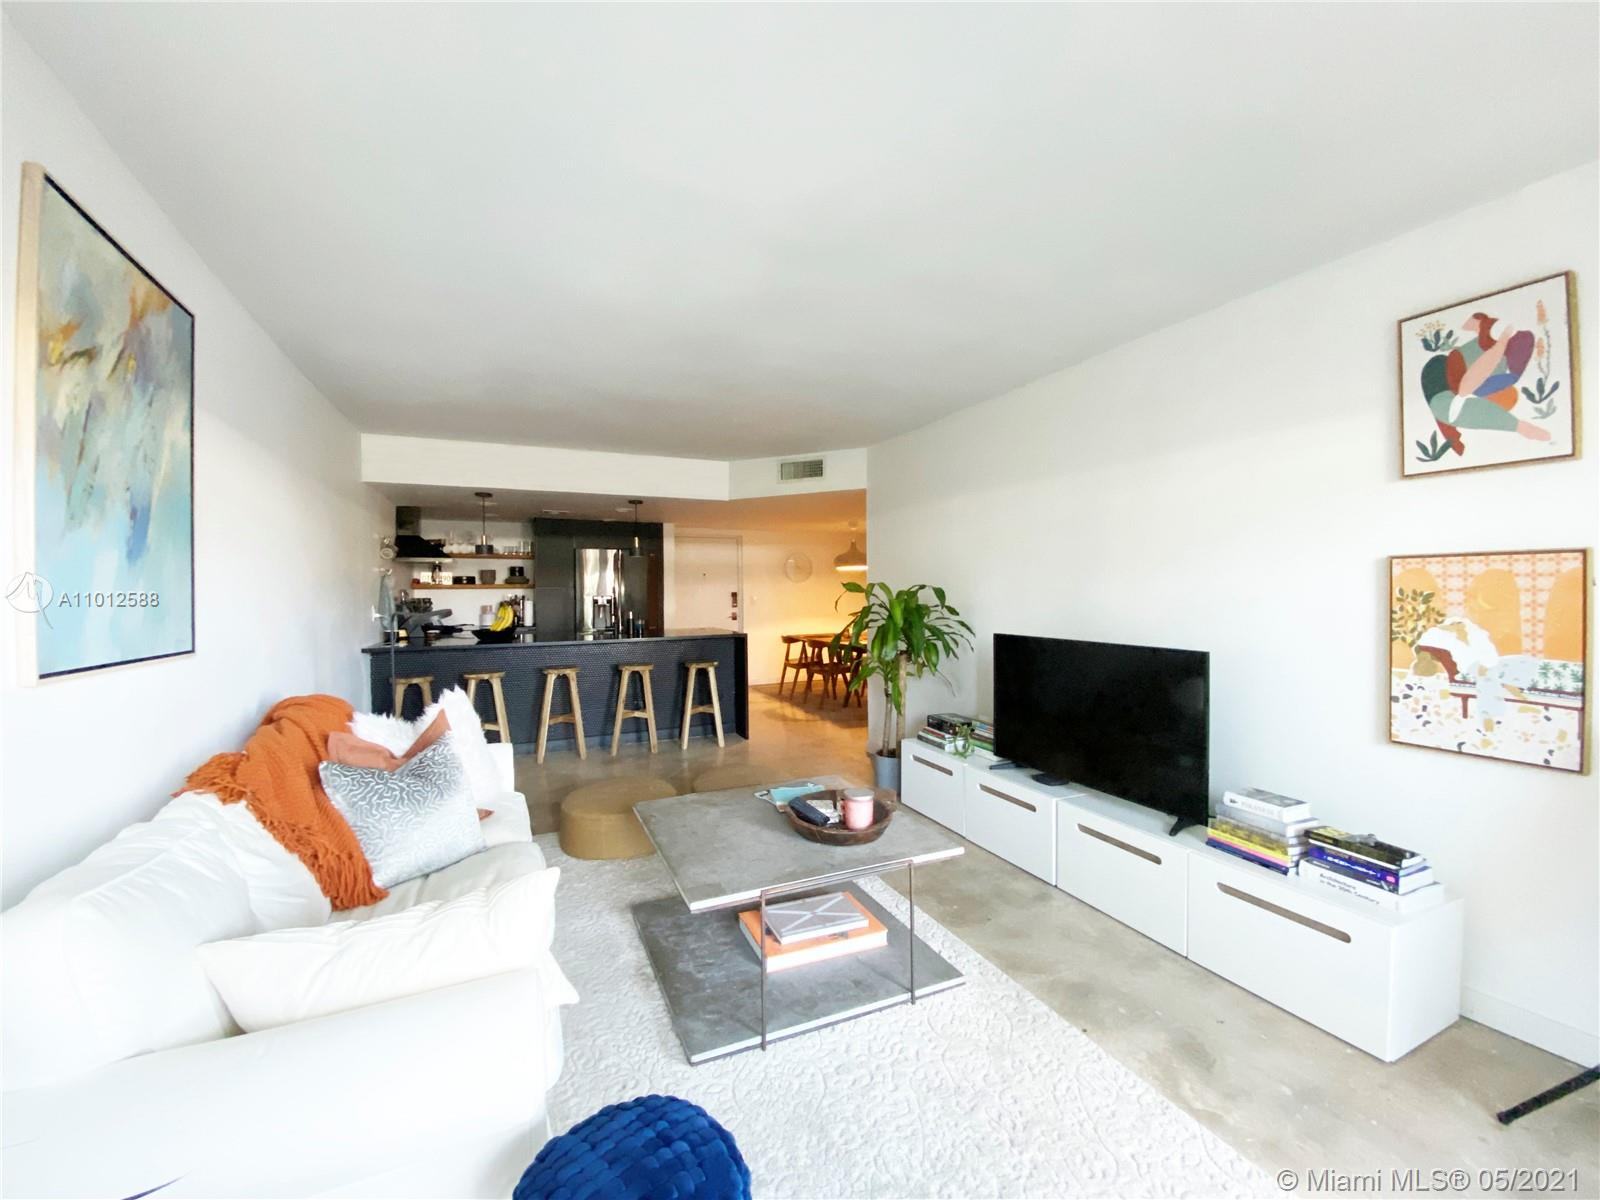 TURNKEY AND AVAILABLE MAY 1, 2021: Newly remodeled by architect/owner, this unit is on trend and brand new -- everything remodeled from the studs outwards. Enjoy this hidden community in the HEART of Wilton Manors. Unit can come with some furniture, OR THE OWNER CAN REMOVE ALL FURNITURE. Complex features swimming pool, laundry, water views, walking distance to all amenities.